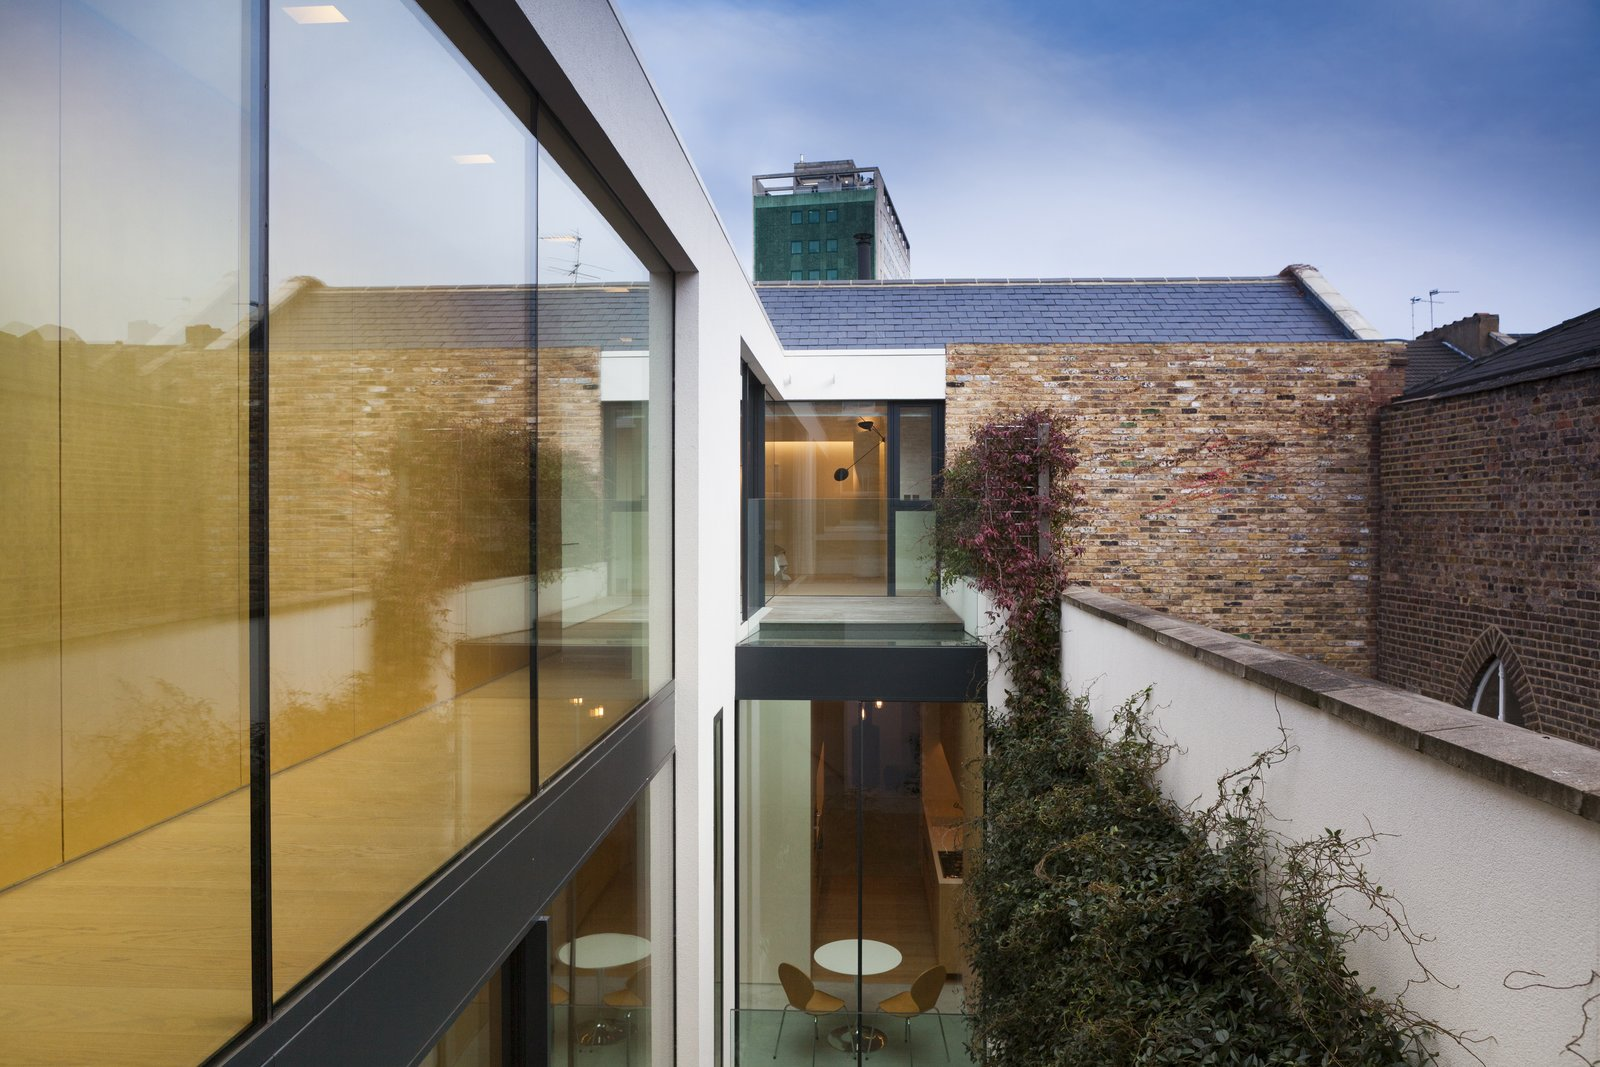 Windows and Metal  Hillgate Street Residence from A Stunning Townhouse For Sale in a Historic London Neighborhood